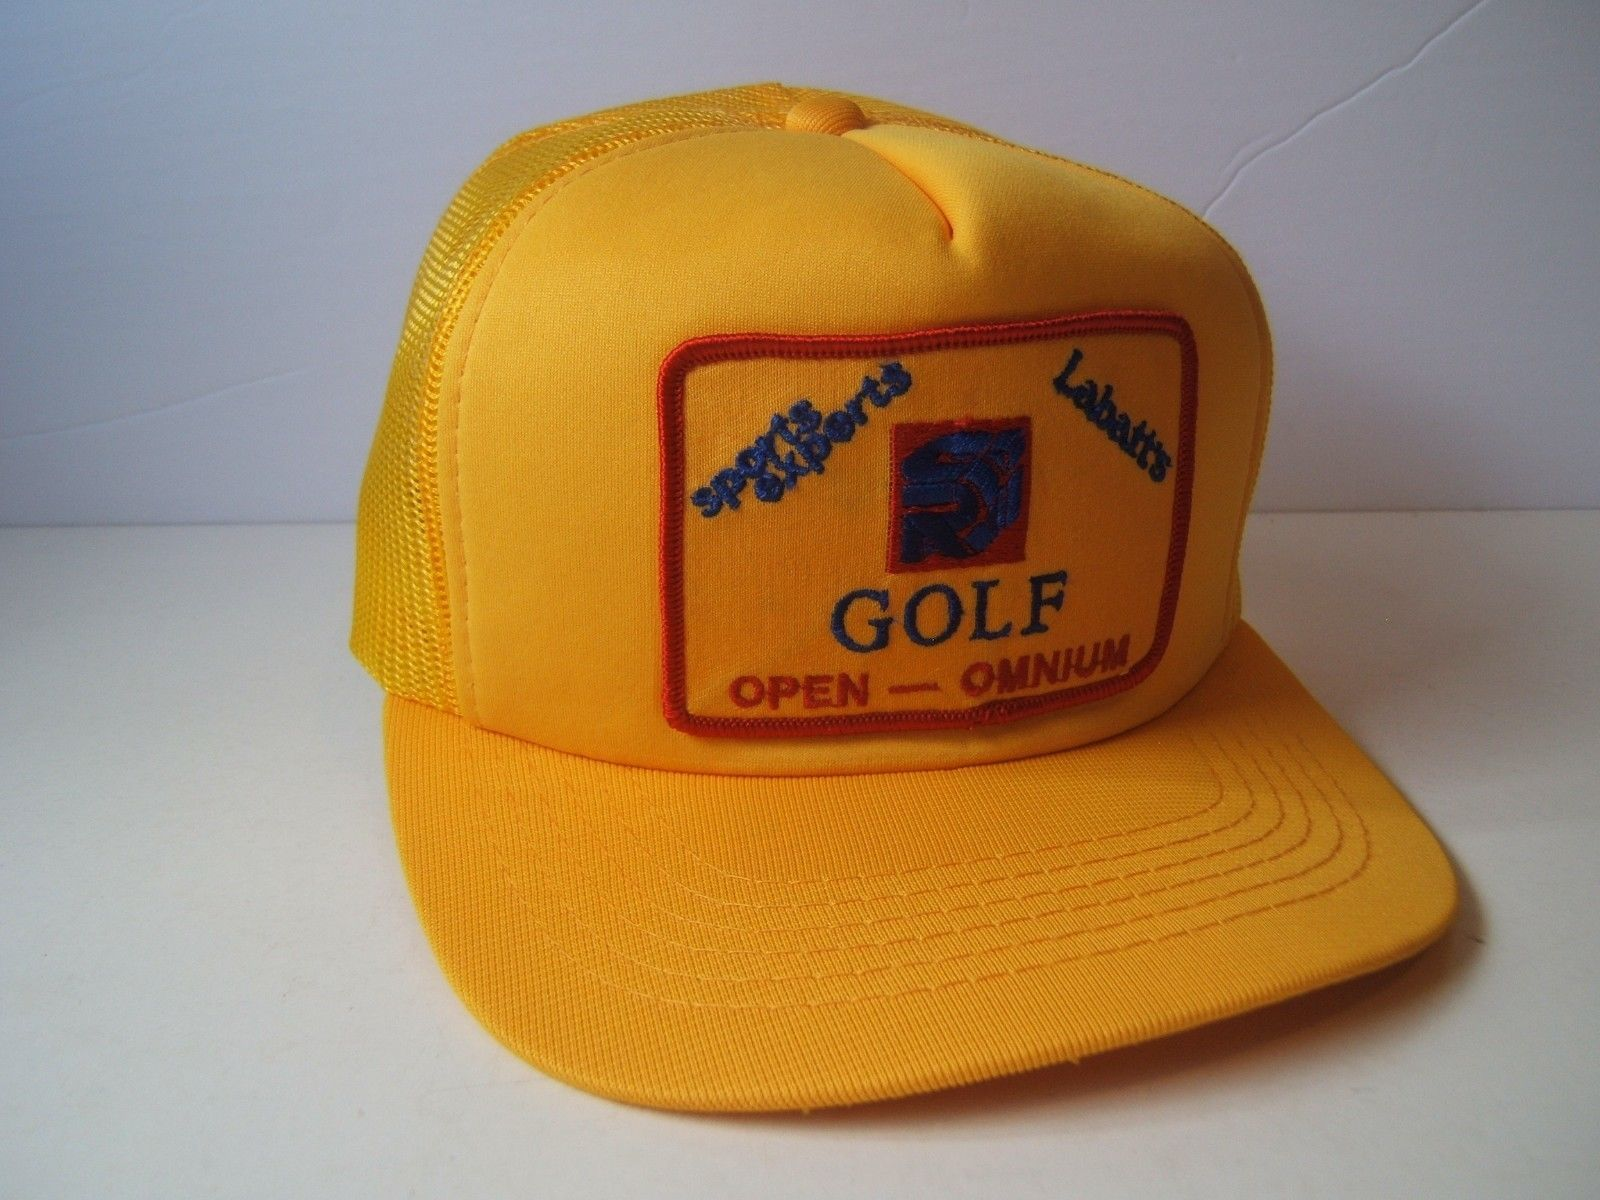 Primary image for Labatt's Sports Experts Golf Open Patch Hat Vintage Yellow Snapback Trucker Cap